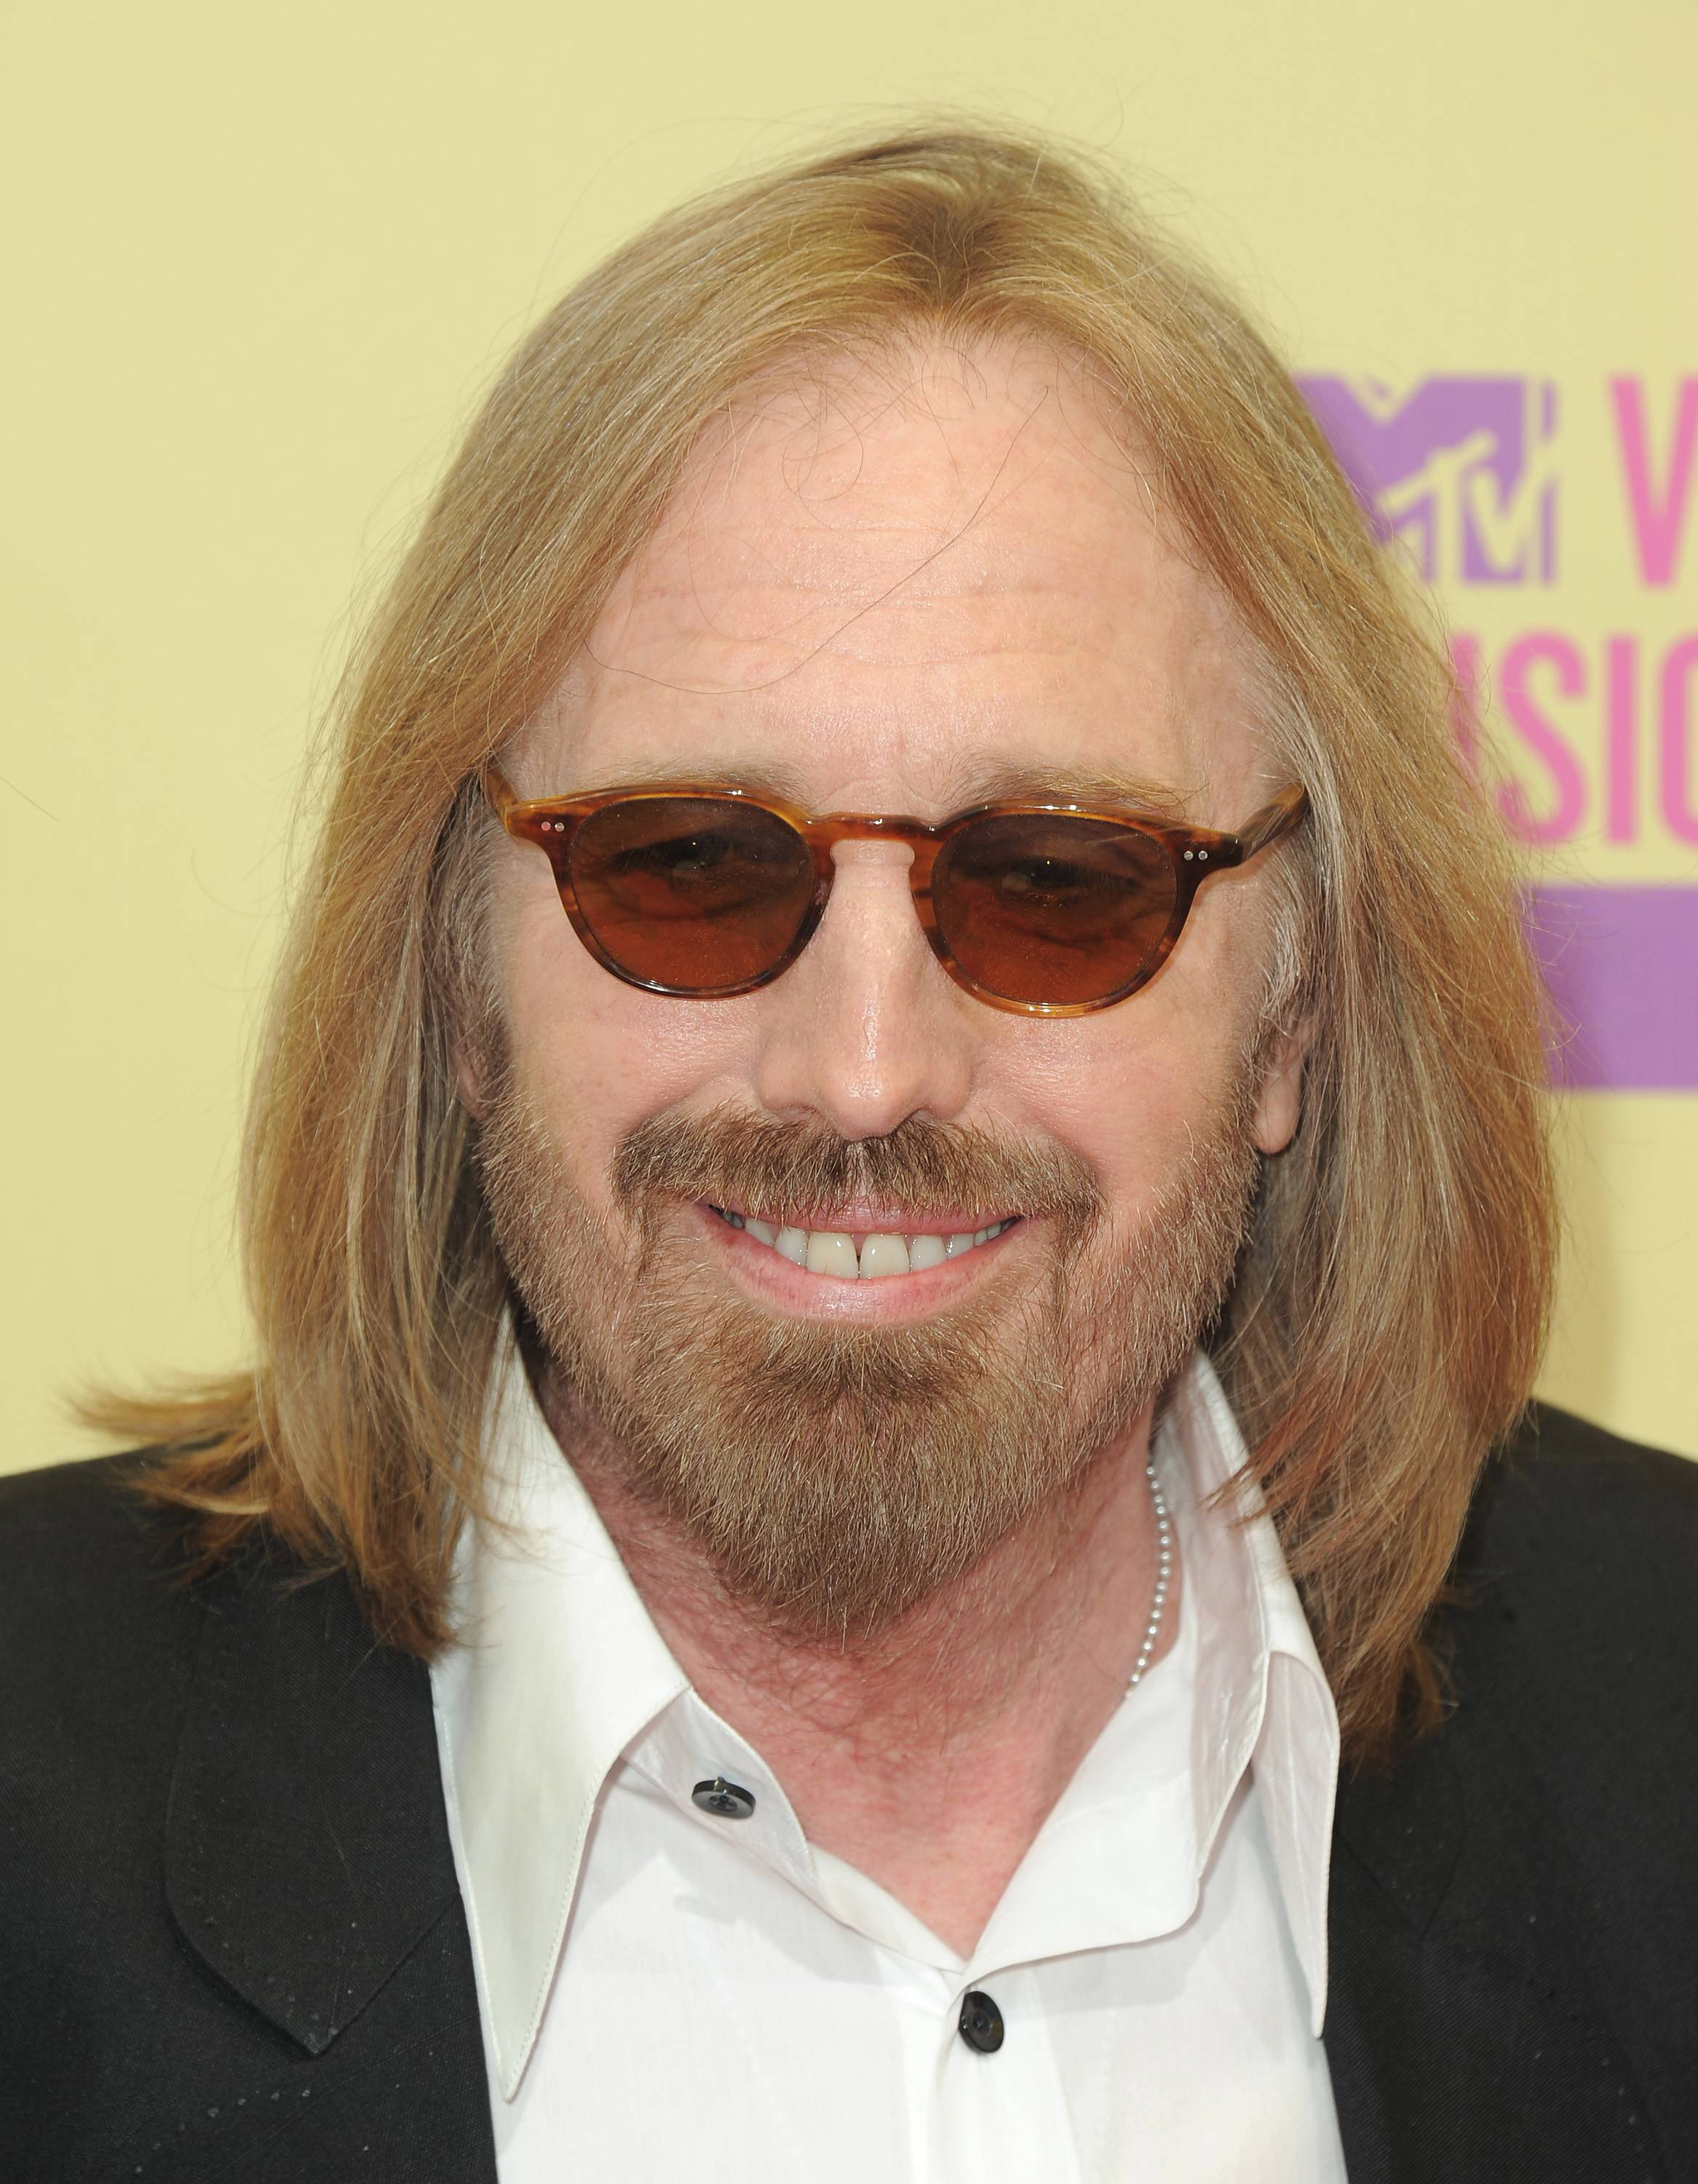 Tom Petty plays the United Center in Chicago Saturday.